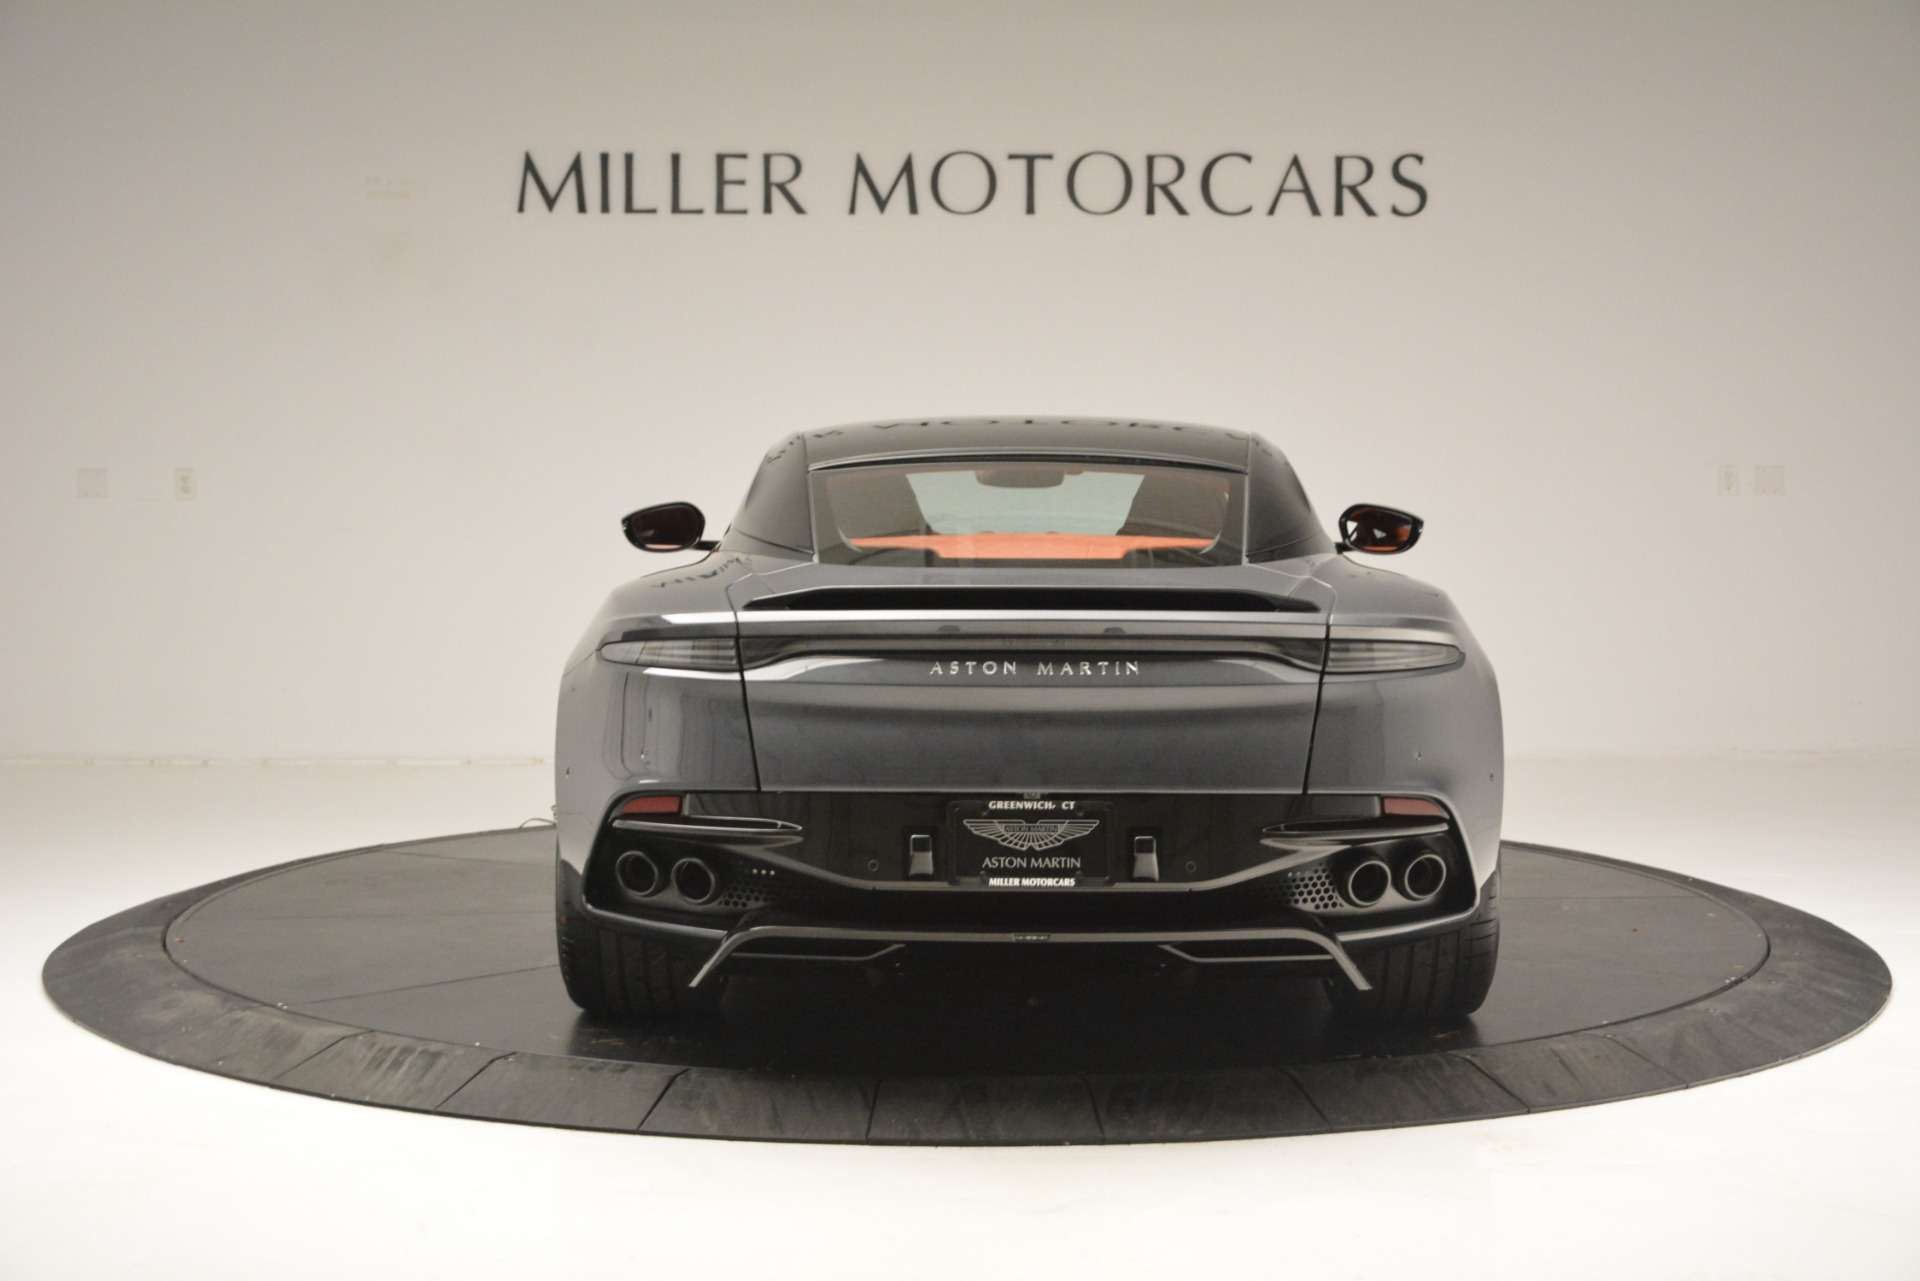 New 2019 Aston Martin DBS Superleggera For Sale In Westport, CT 2827_p6